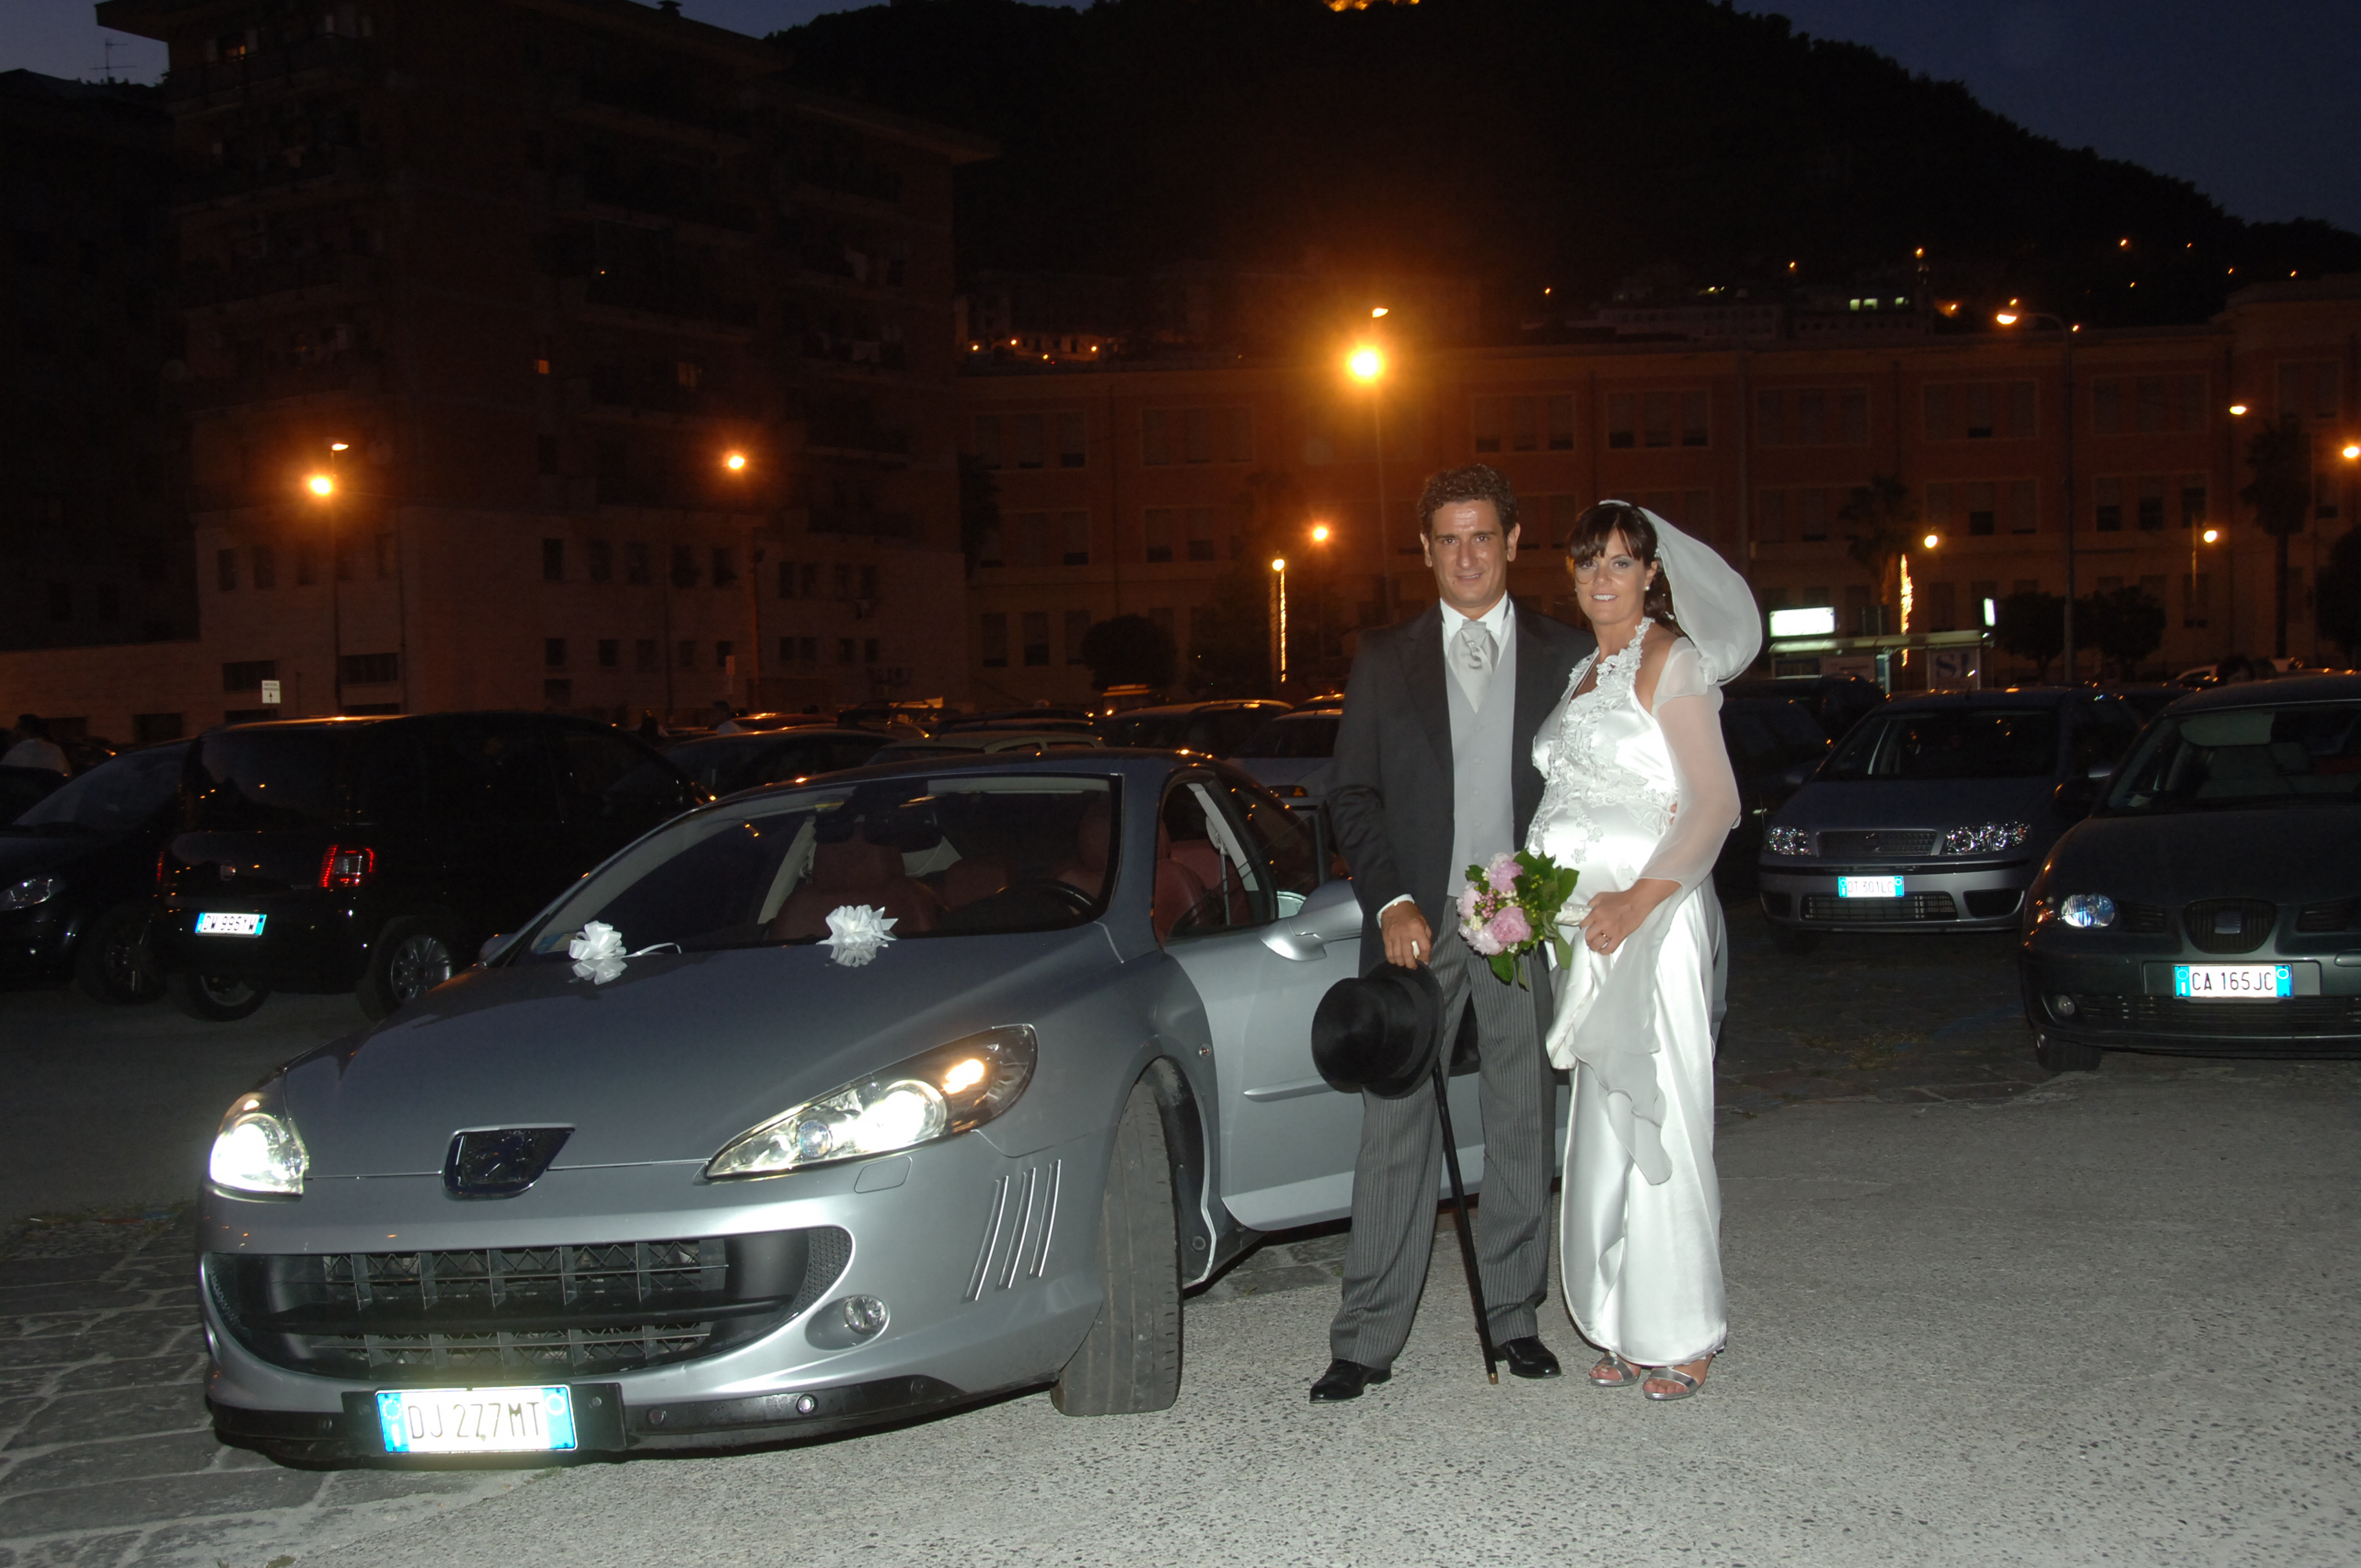 http://www.weddingamalfi.com/wp-content/uploads/Enza-and-Mario-wedding-car.jpg